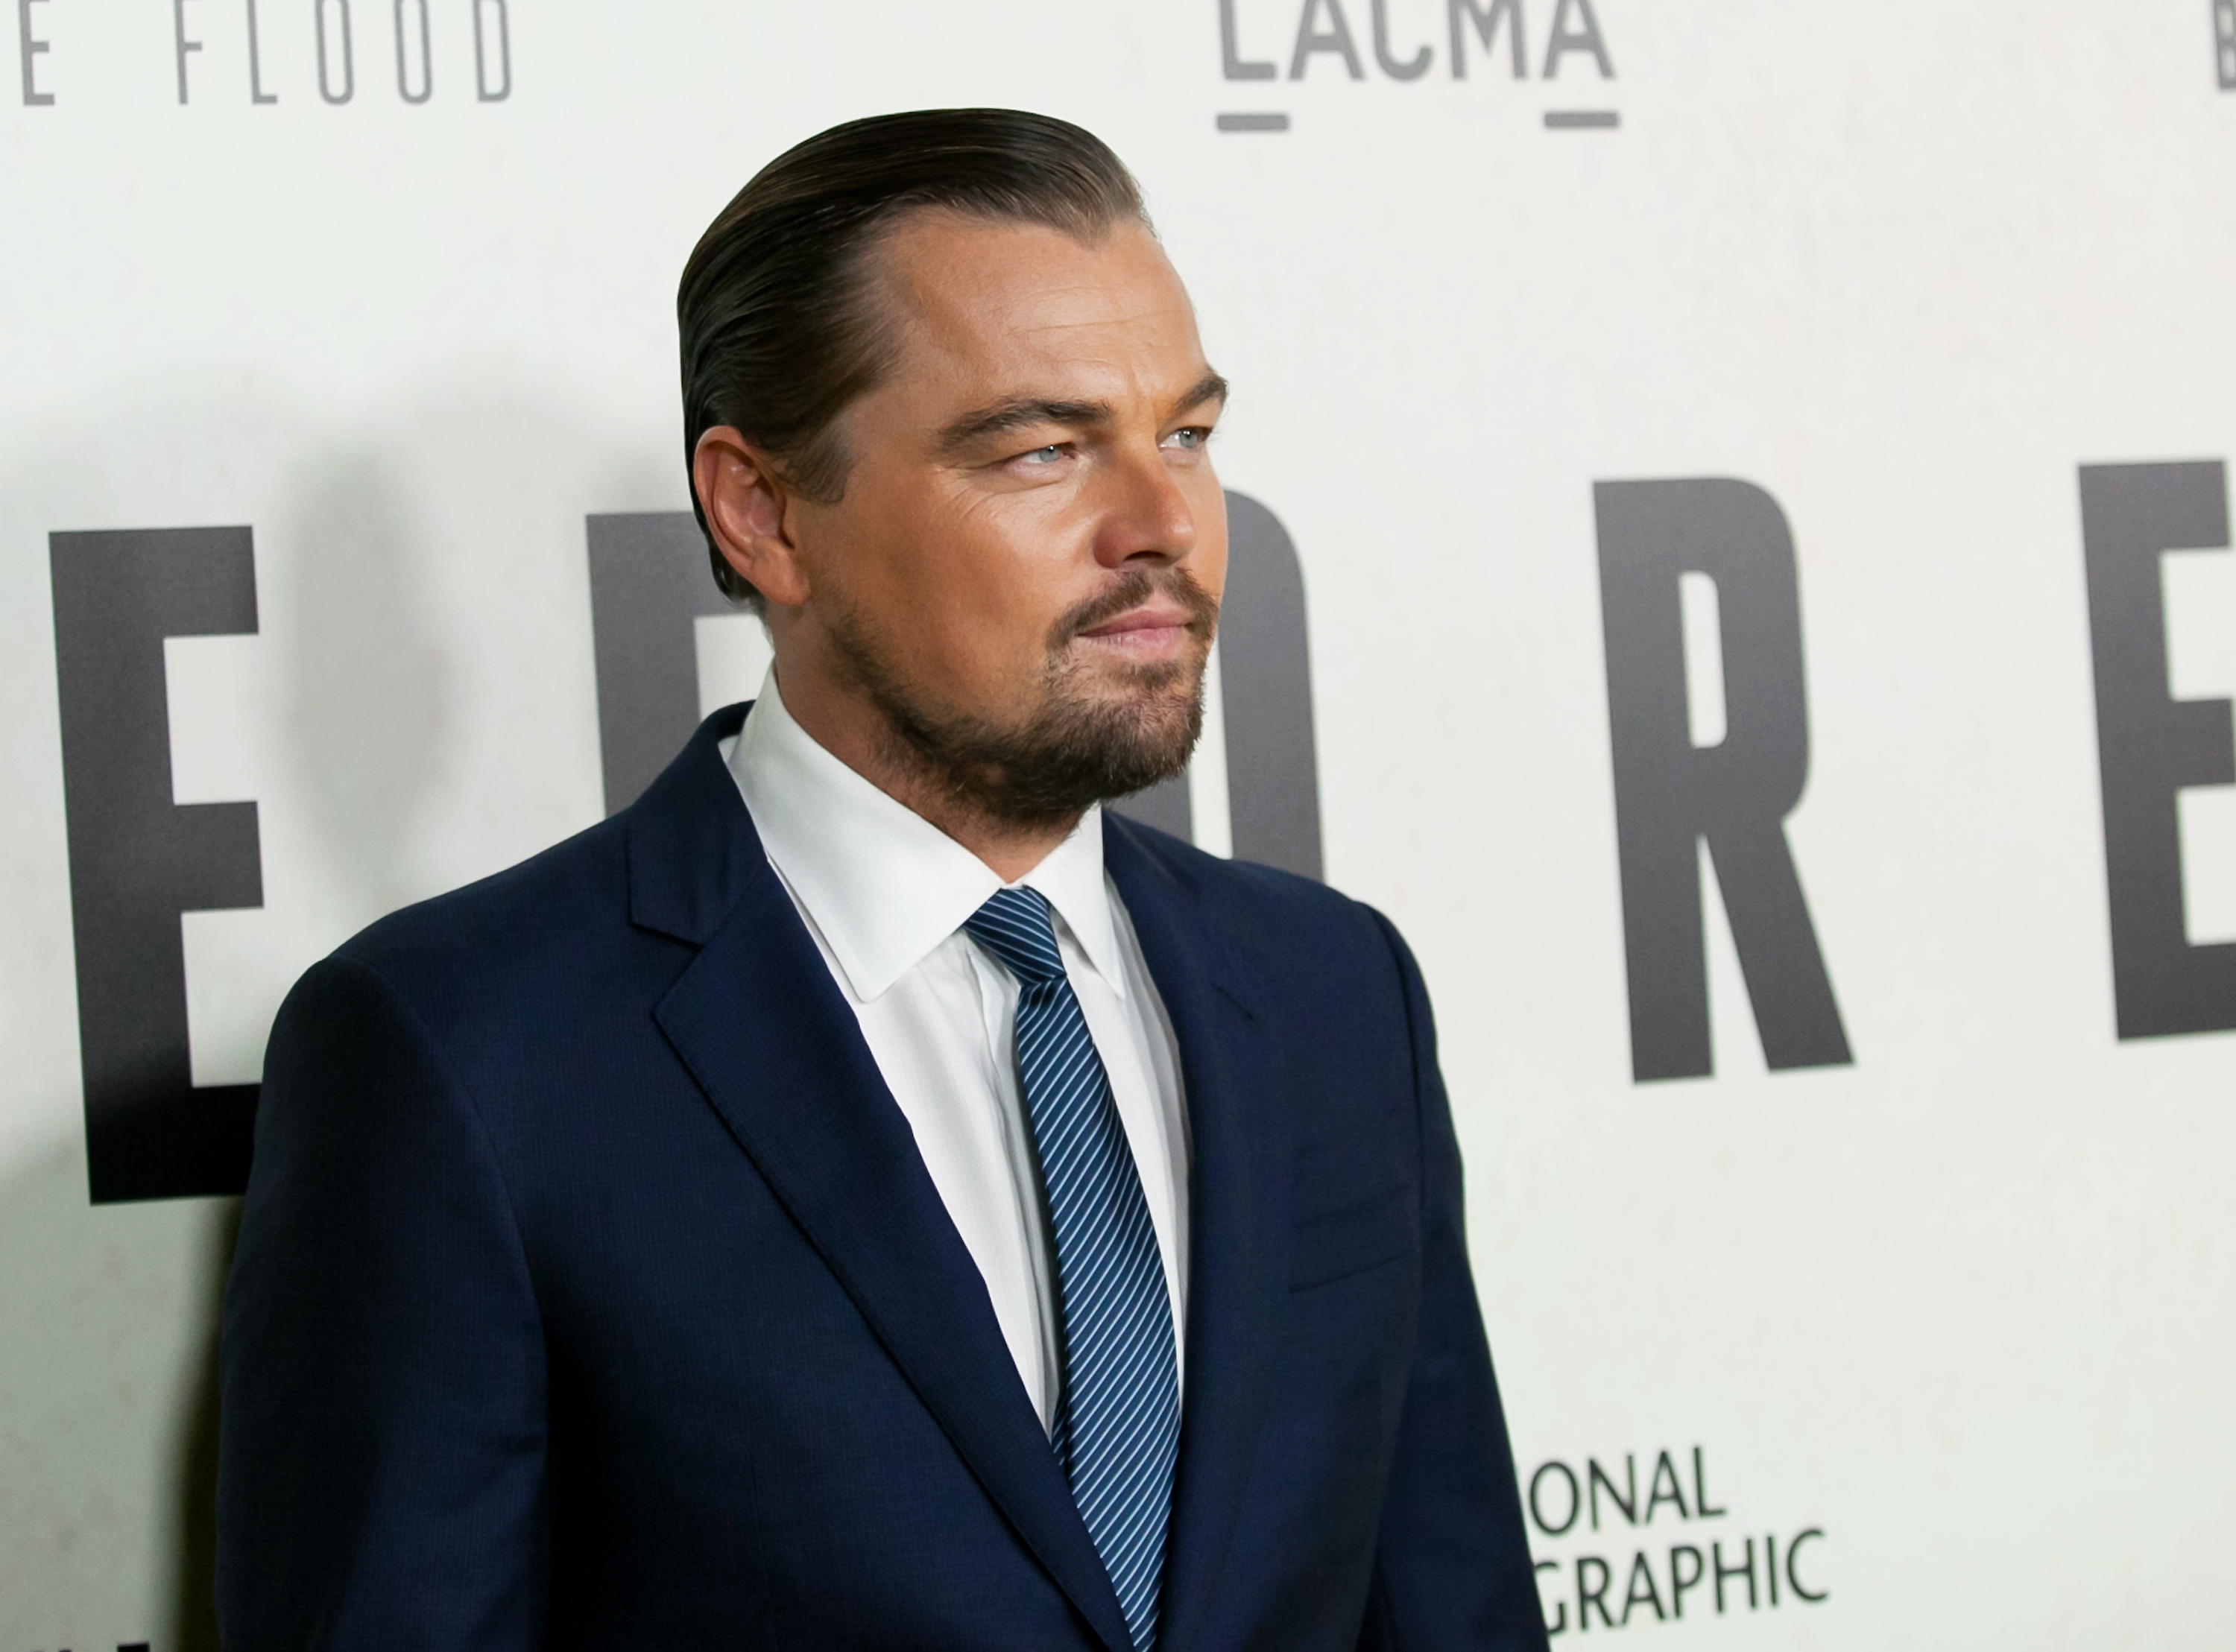 You can score a date with Leonardo Dicaprio for $6 — only really